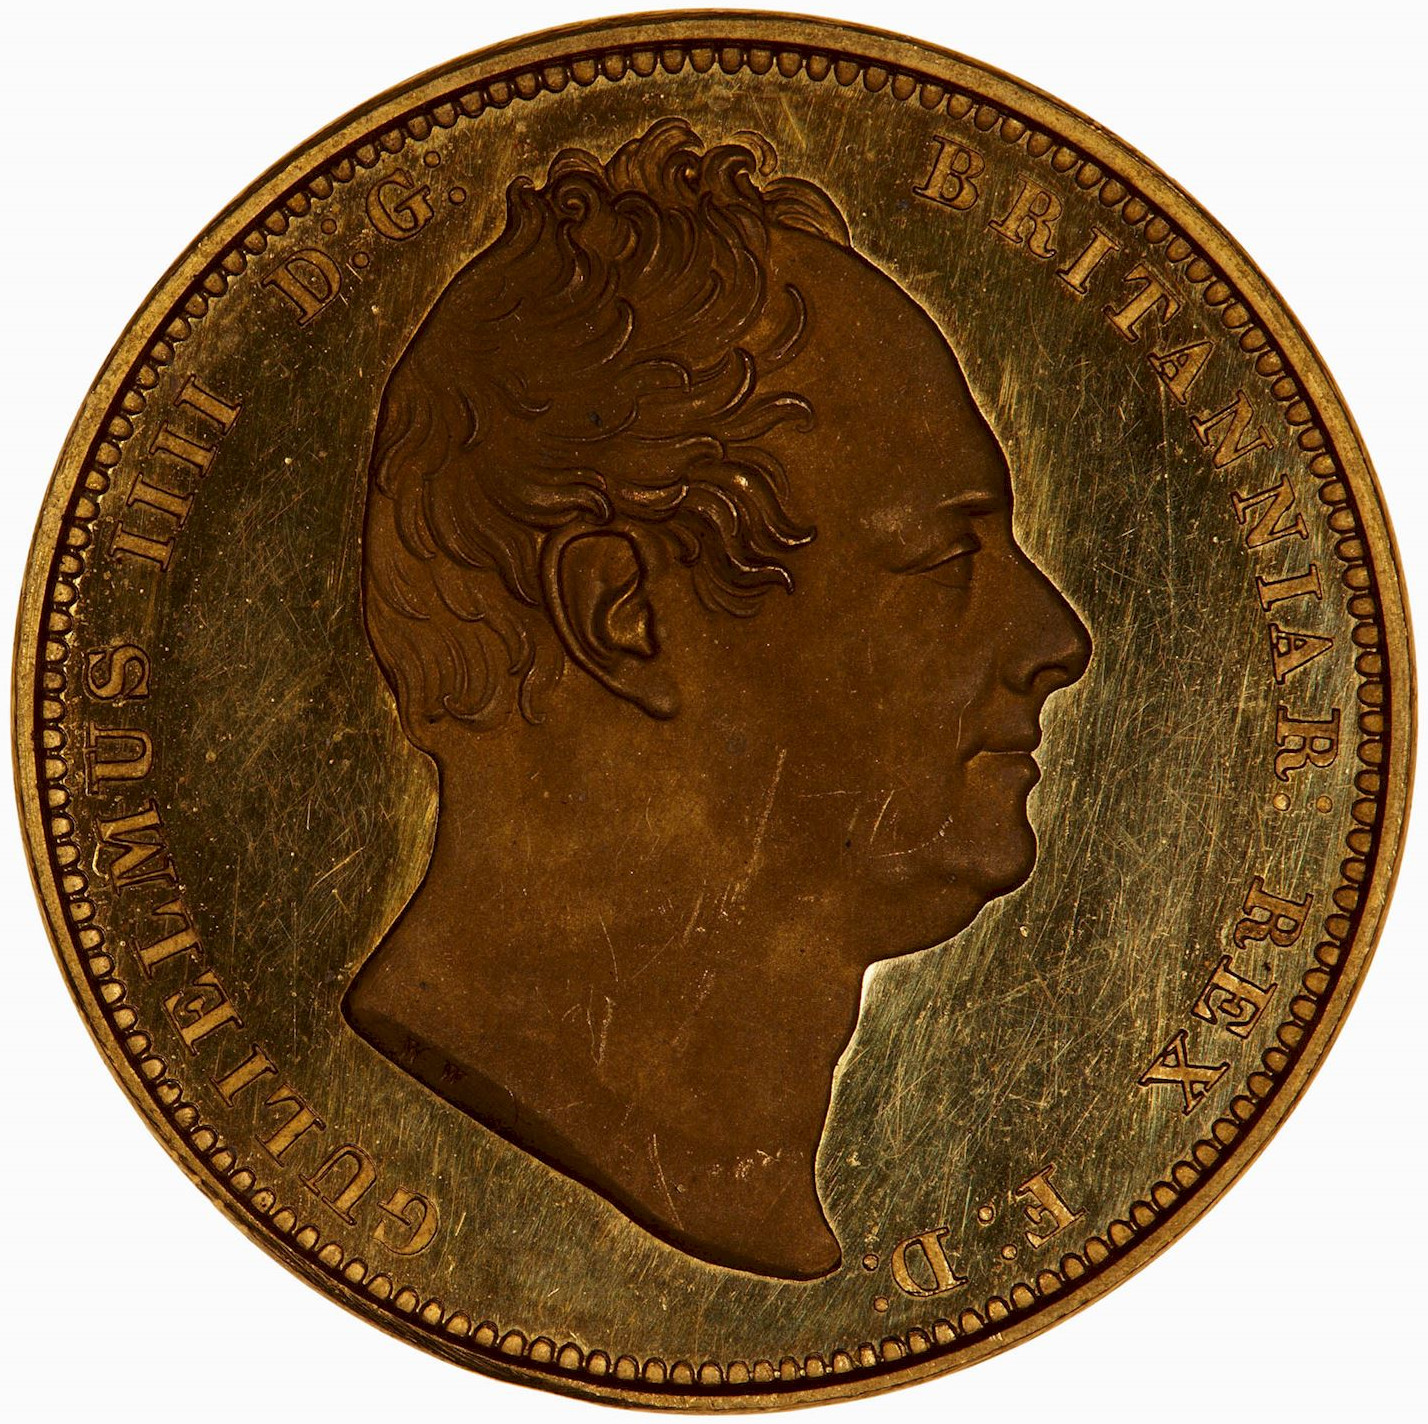 Two Pounds (Pre-decimal): Photo Proof Coin - 2 Pounds, William IV, Great Britain, 1831